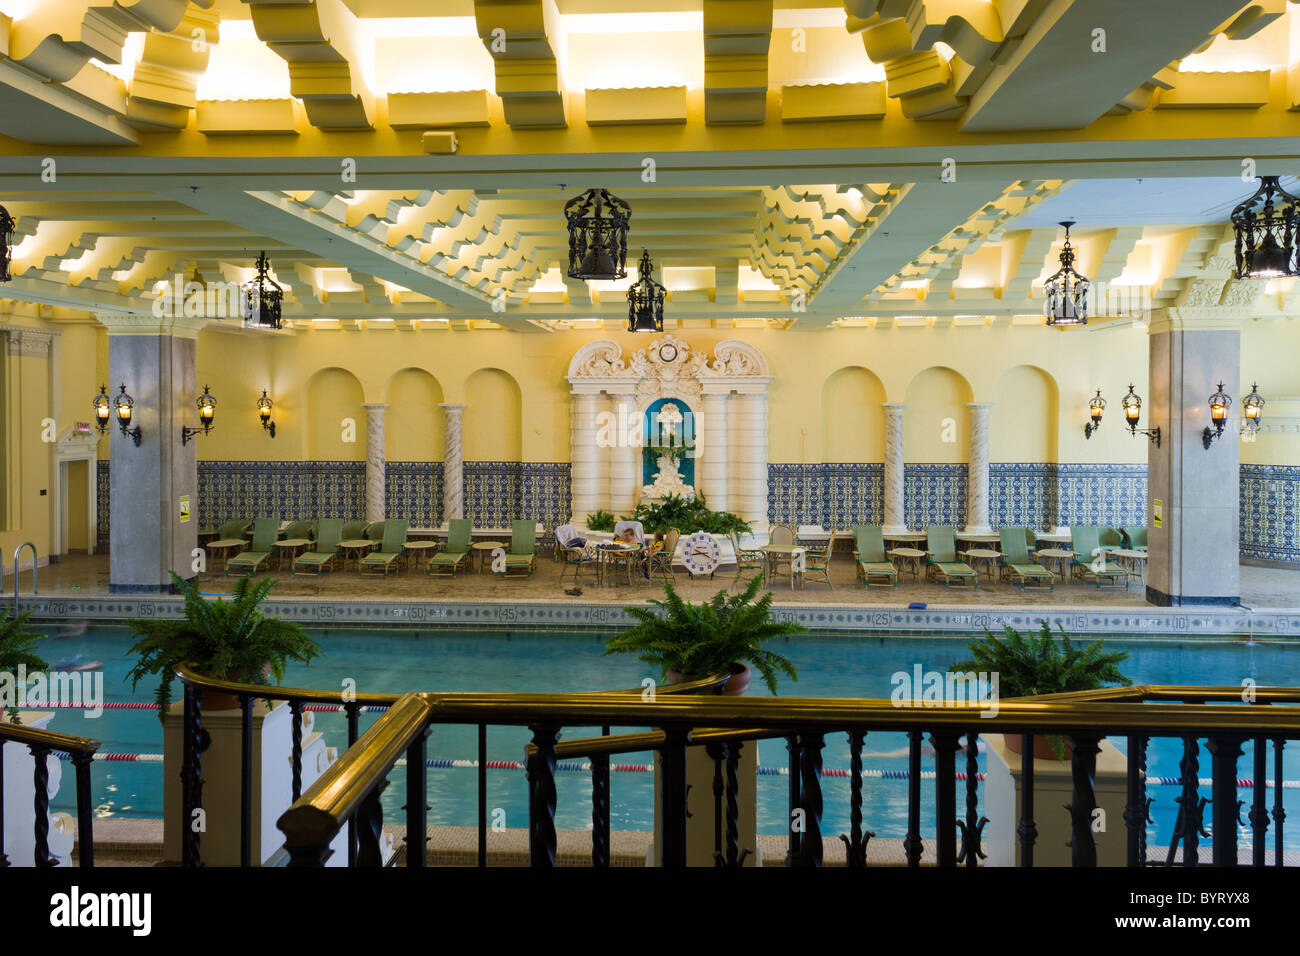 Swimming Pool Medinah Athletic Club Now The Hotel Intercontinental Stock Photo Royalty Free